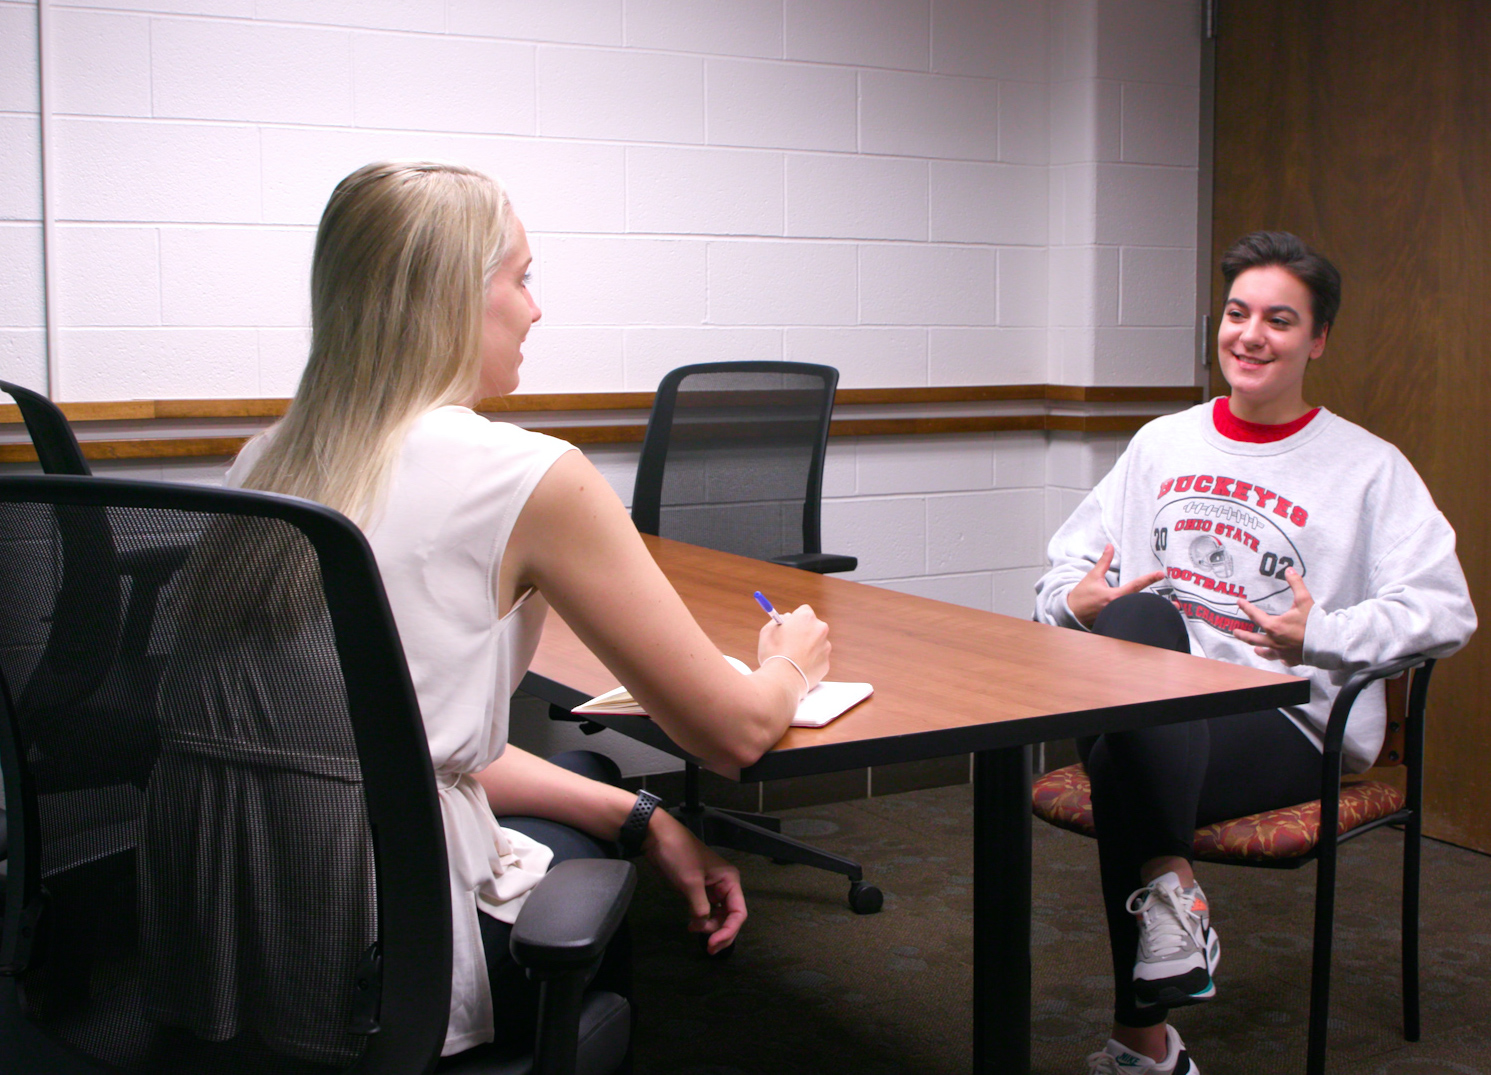 Student Mary Trabue, speaking here with an Ohio State University counselor, has learned coping mechanisms that help ease the stress and anxiety of the pandemic and virtual learning.